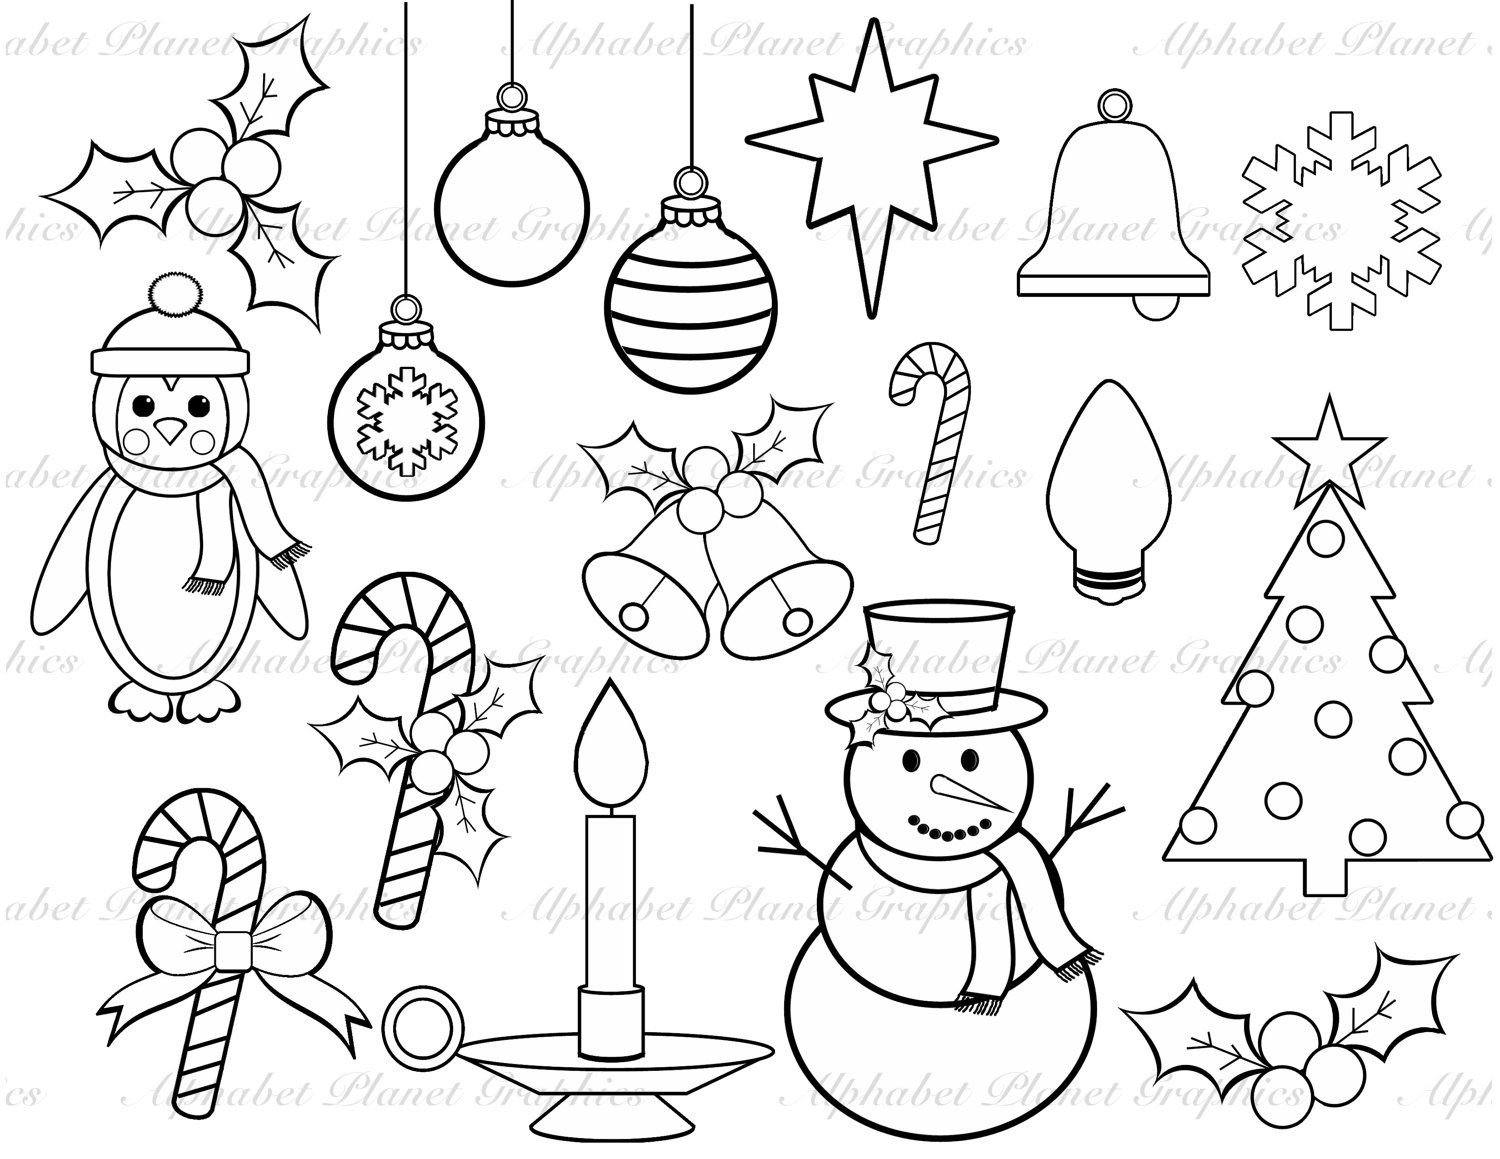 Christmas Drawing Black And White at GetDrawings.com.